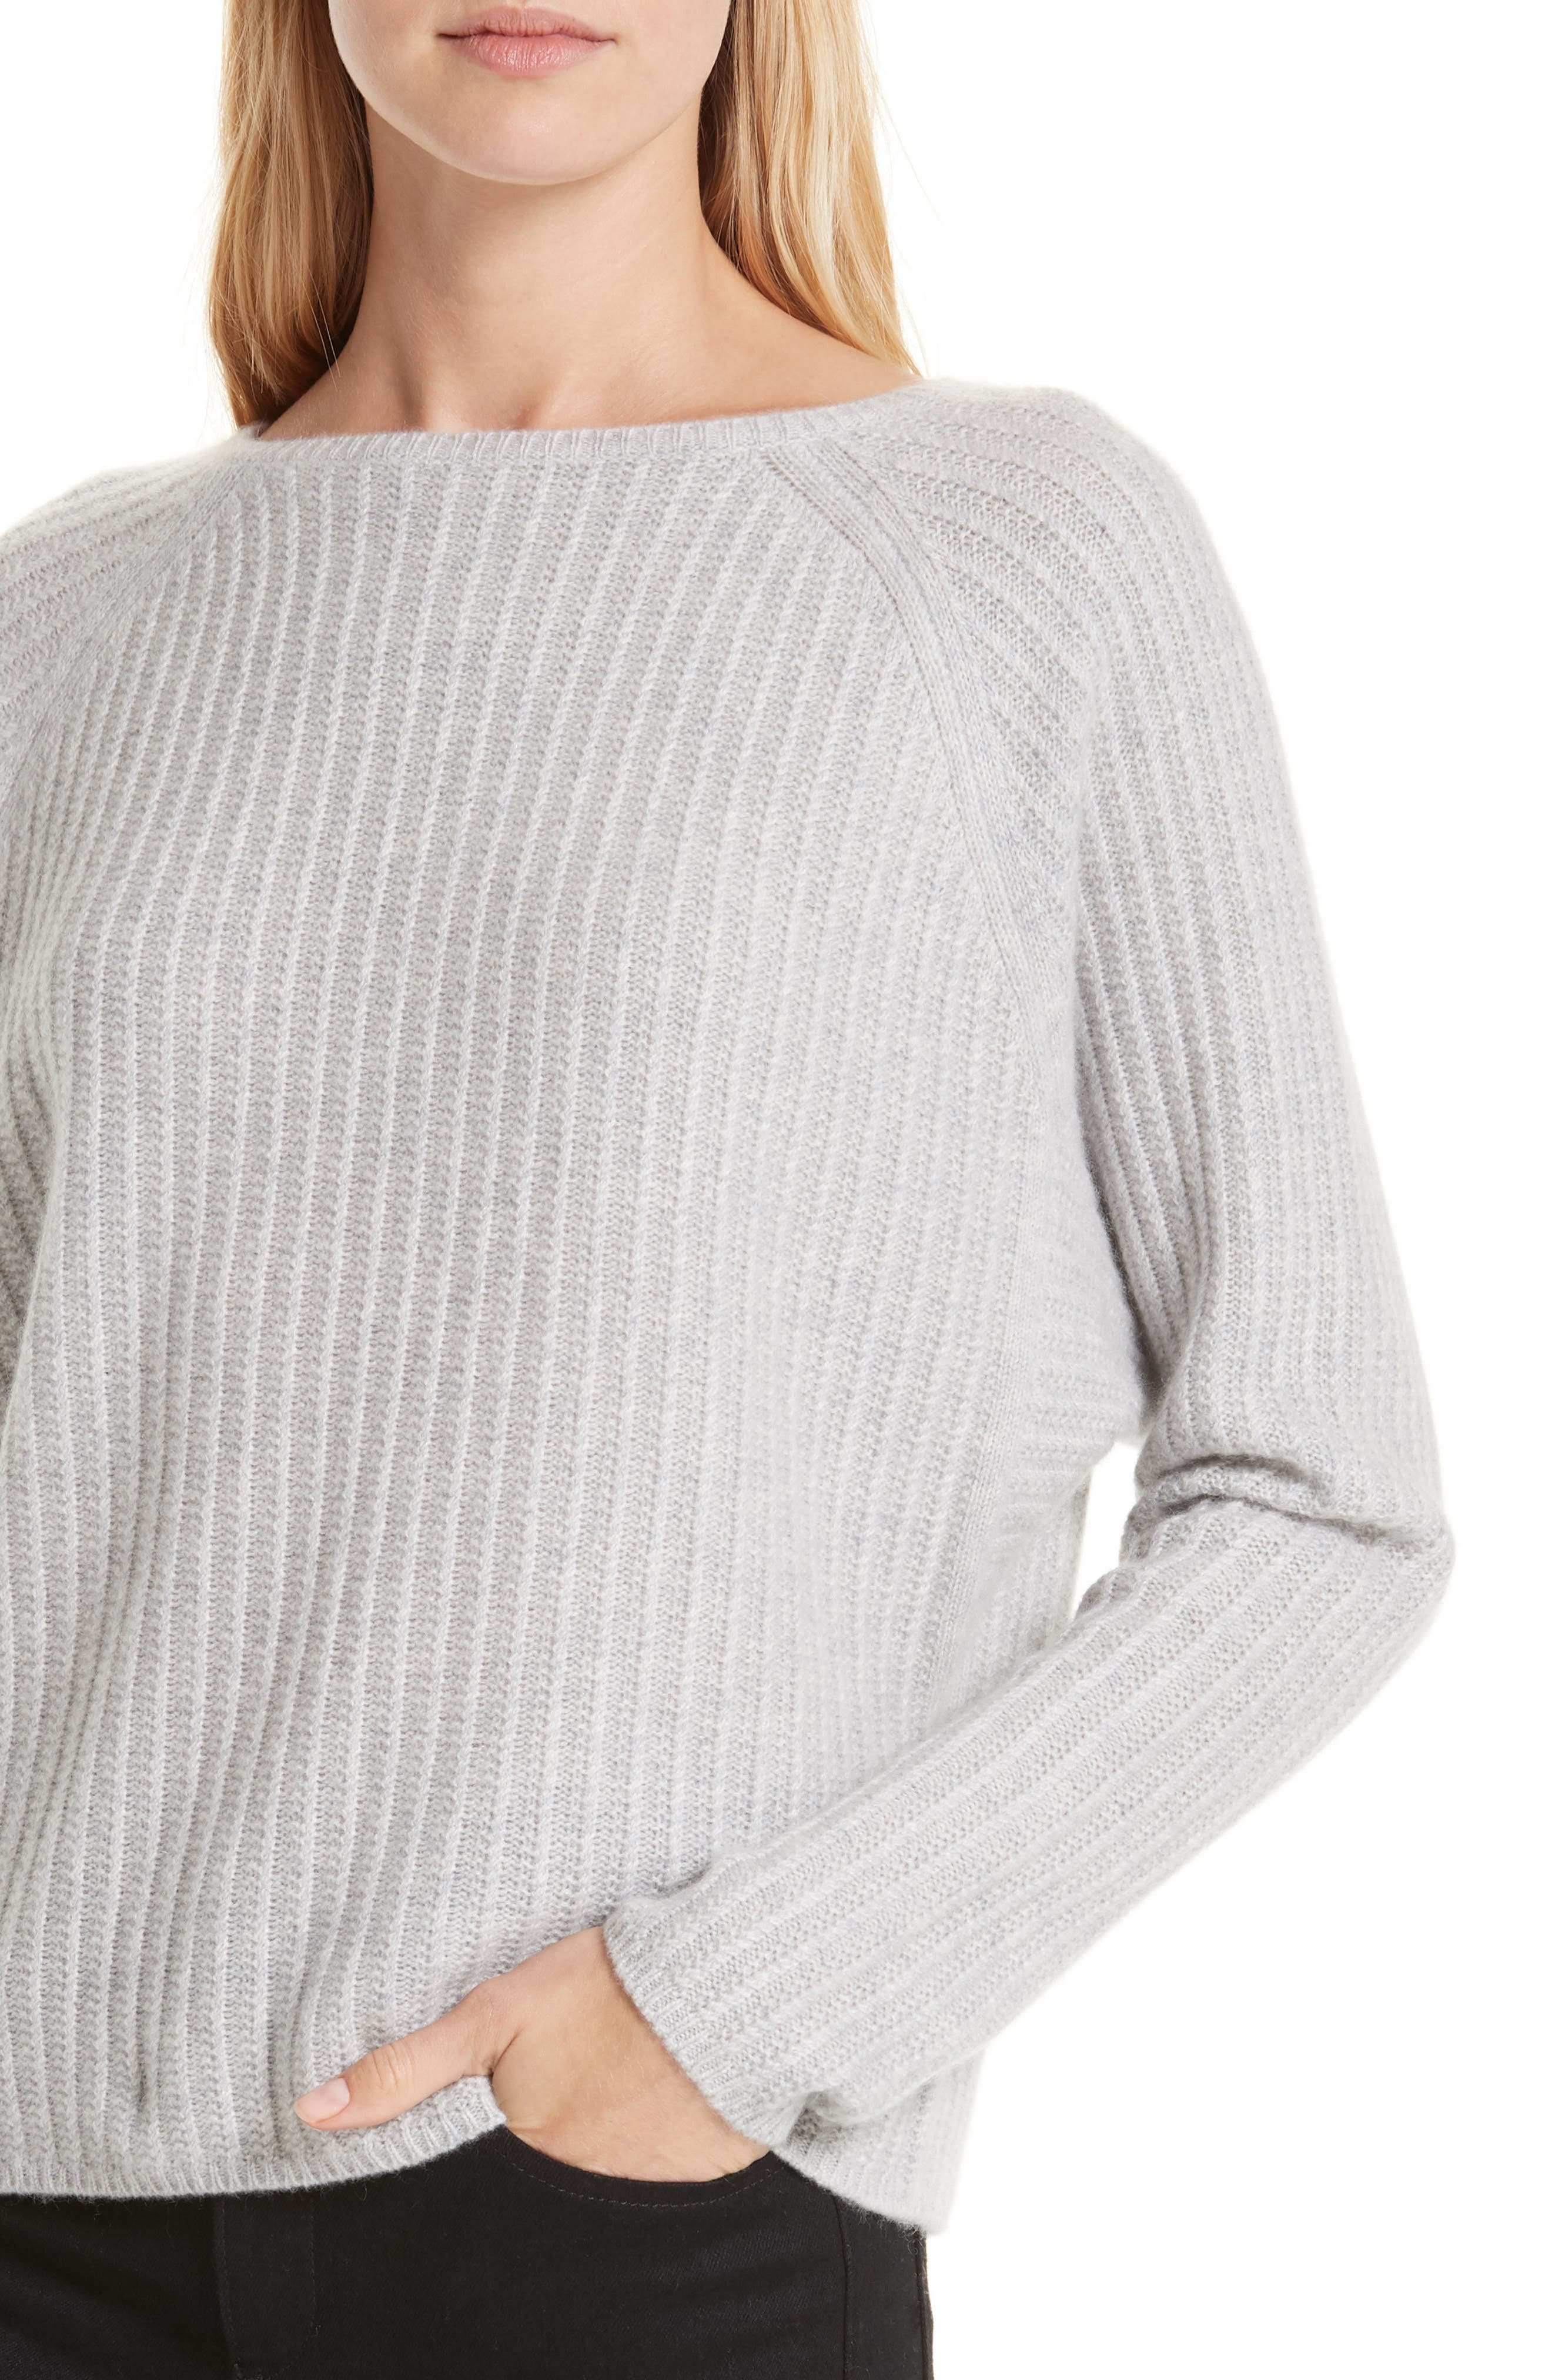 Textured Cashmere Sweater,                             Alternate thumbnail 4, color,                             GREY CLAY HEATHER